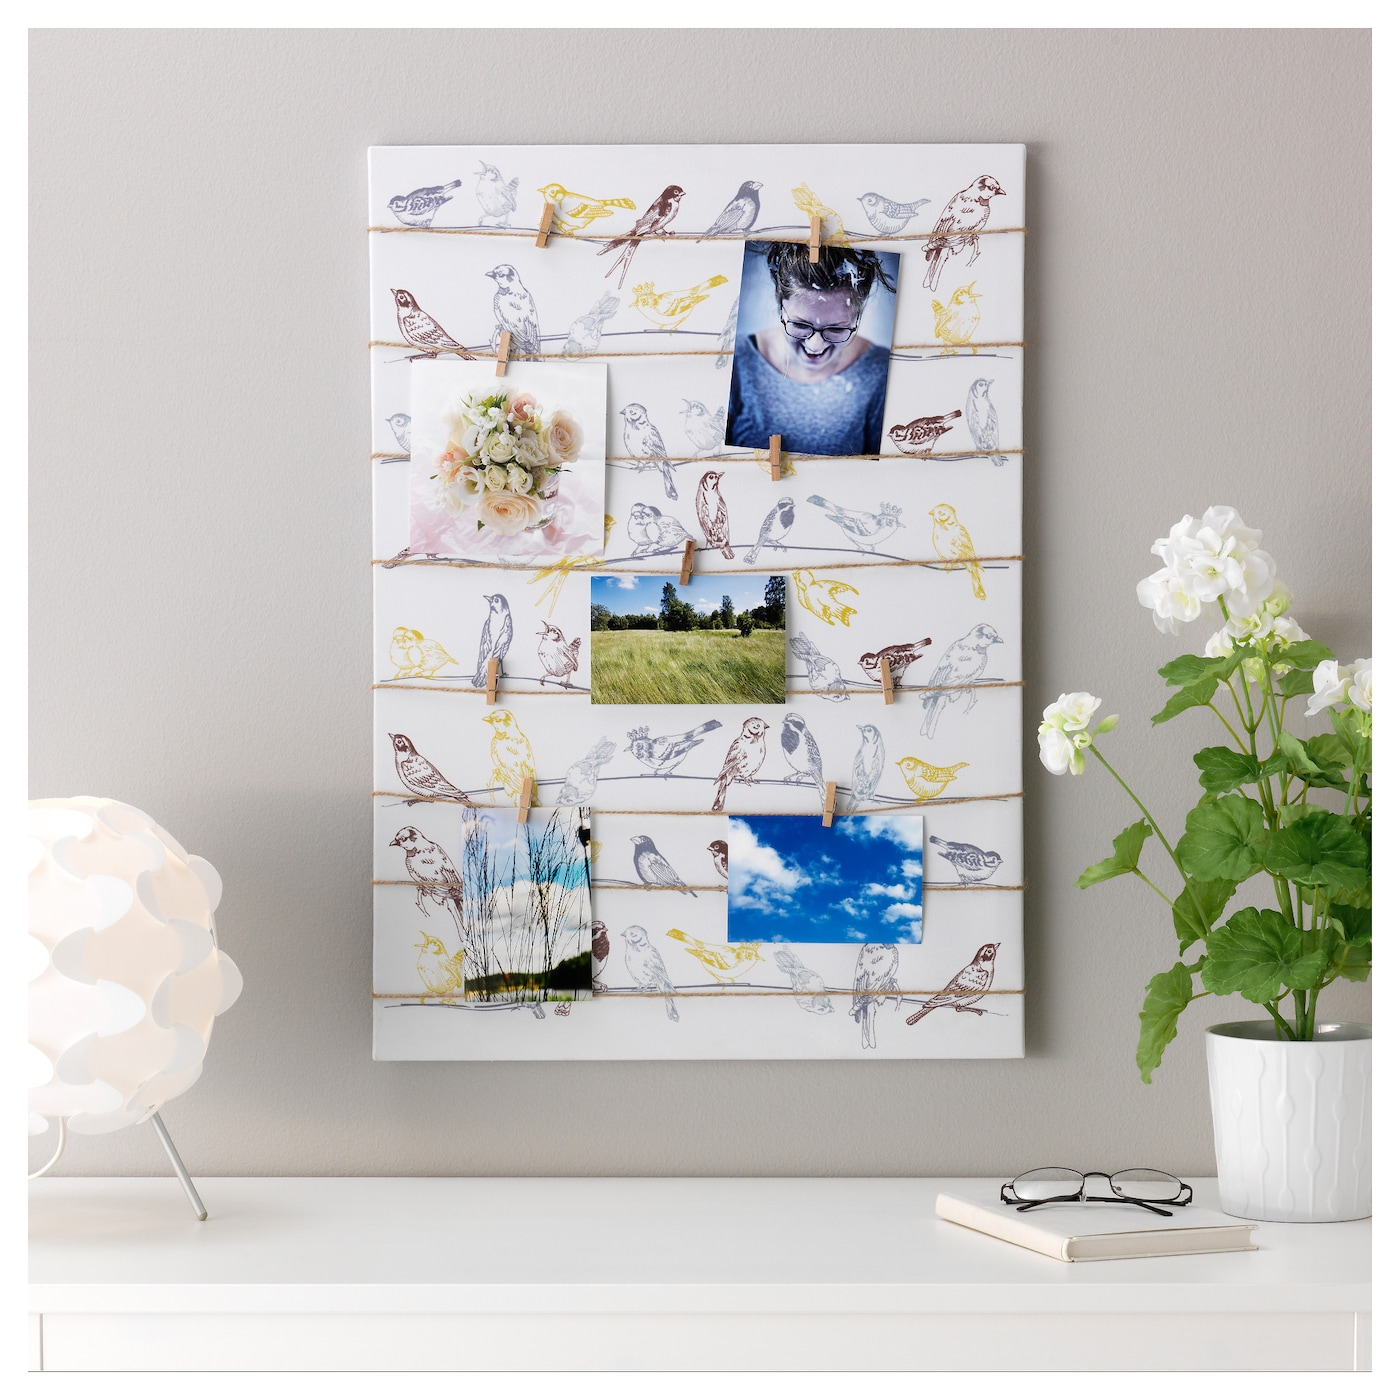 IKEA PJÄTTERYD picture You can personalise your home with artwork that expresses your style.